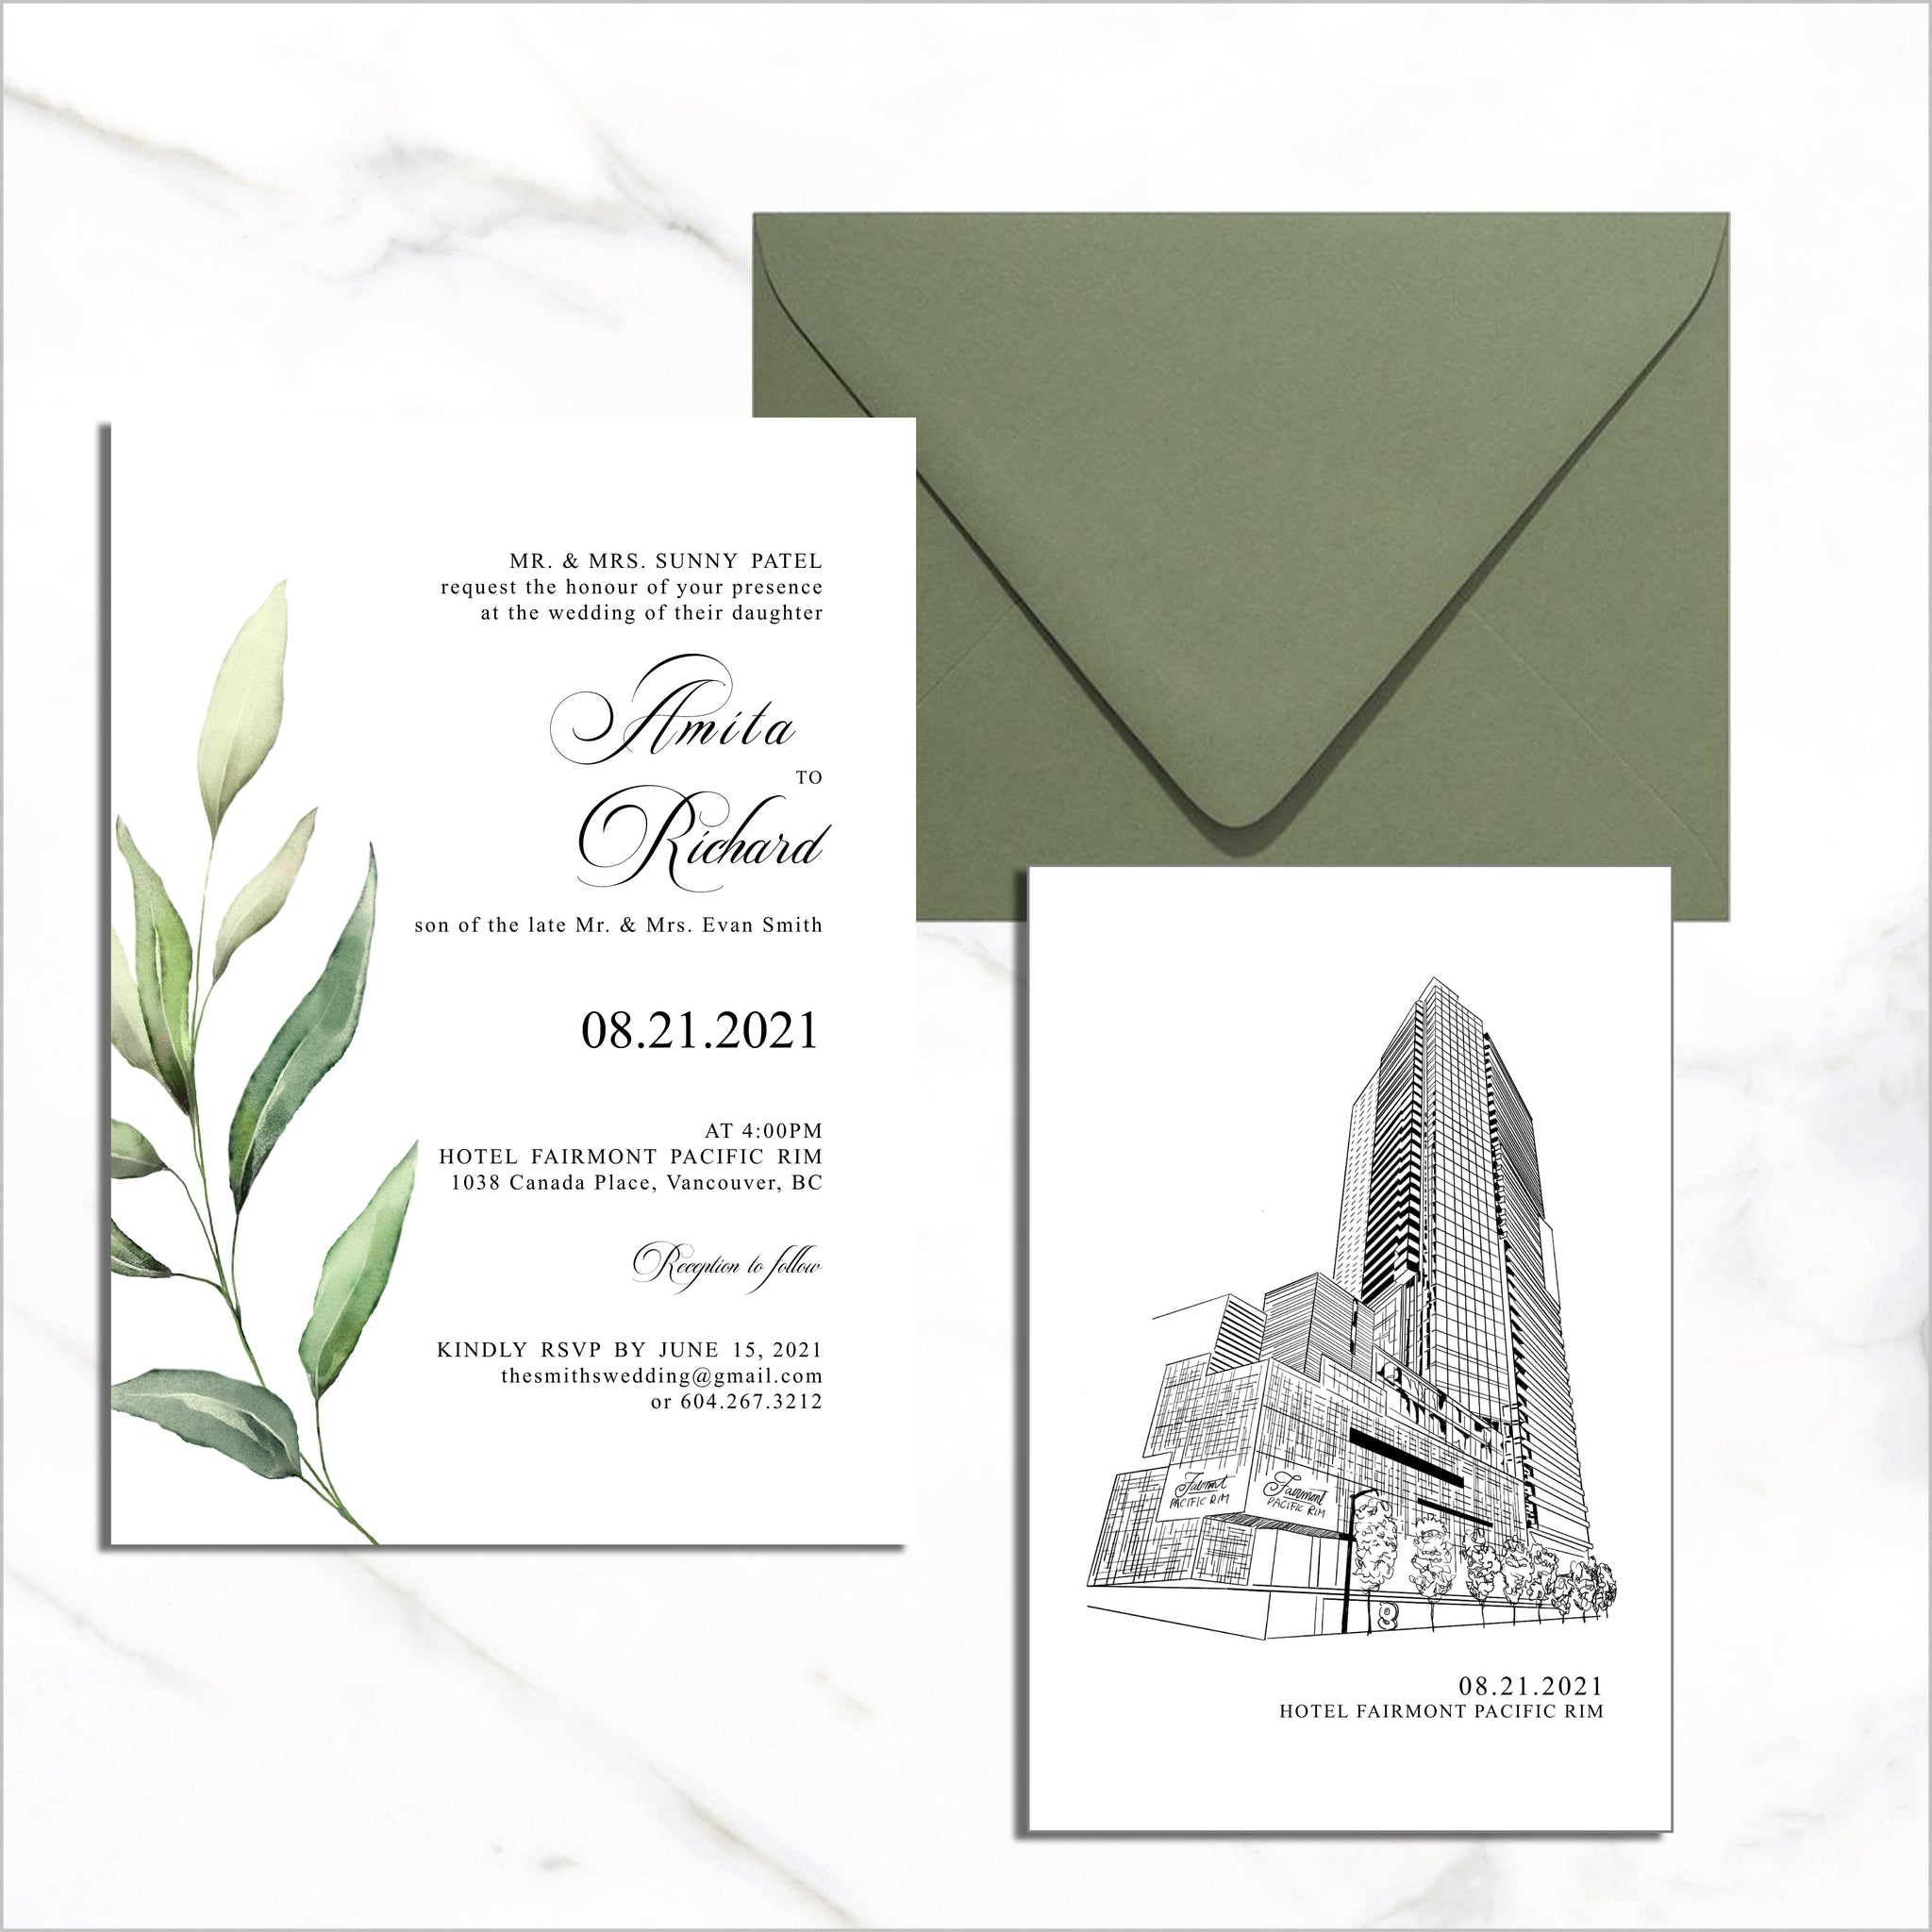 Postcard Invite & Venue Insert - Single Green Leaf